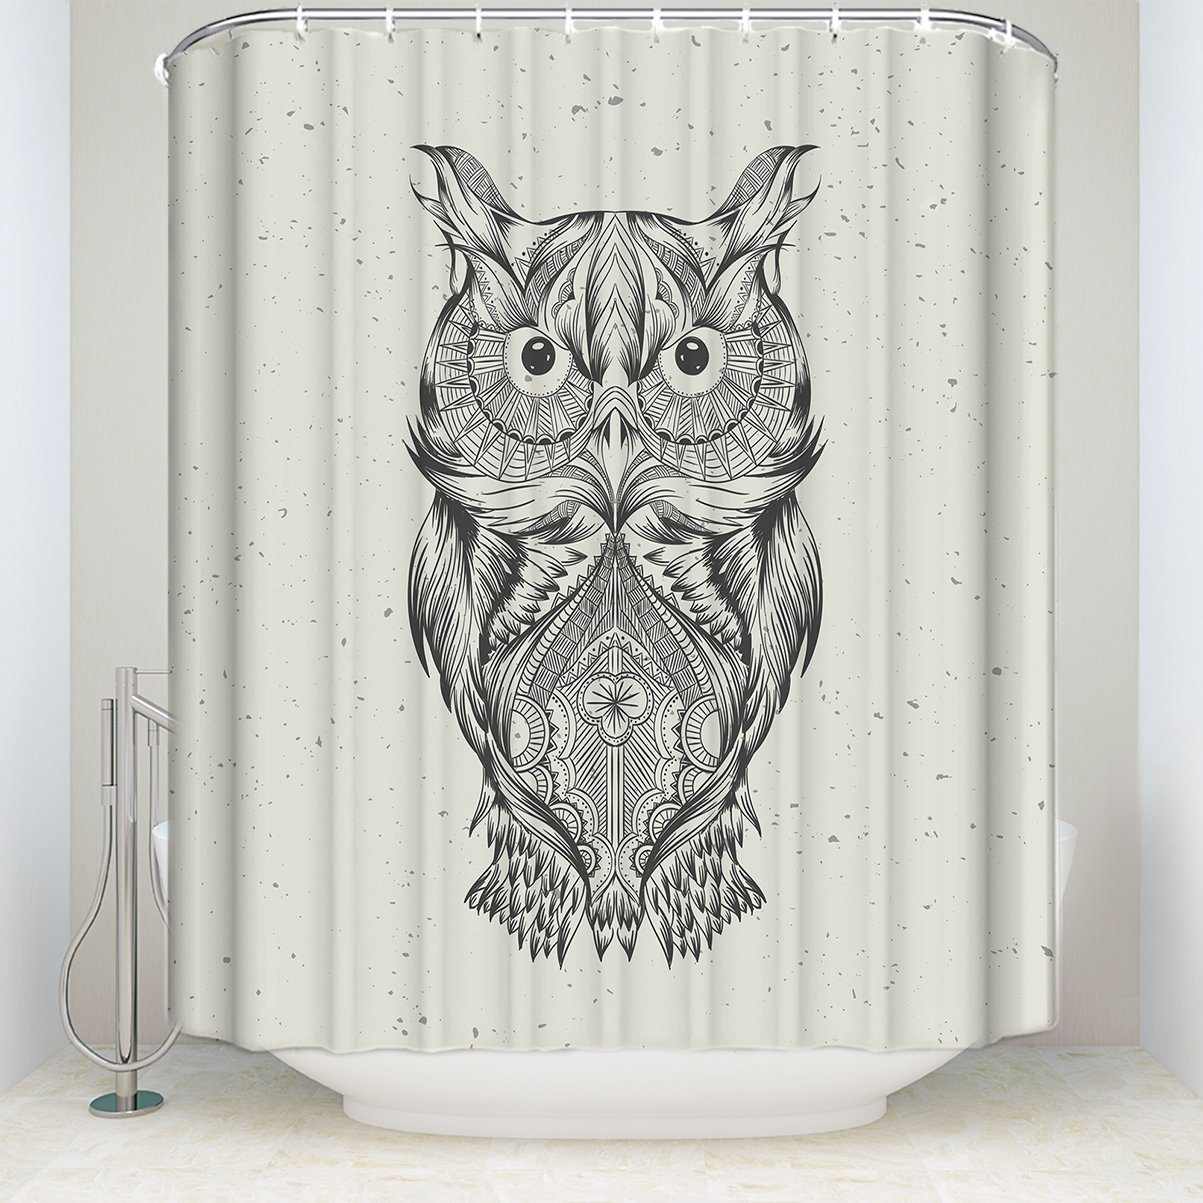 Owl shower curtains - Artistic Retro Owl Shower Curtain Animal Fabric Bathroom Cute Owl 100 Polyester 48x72in China